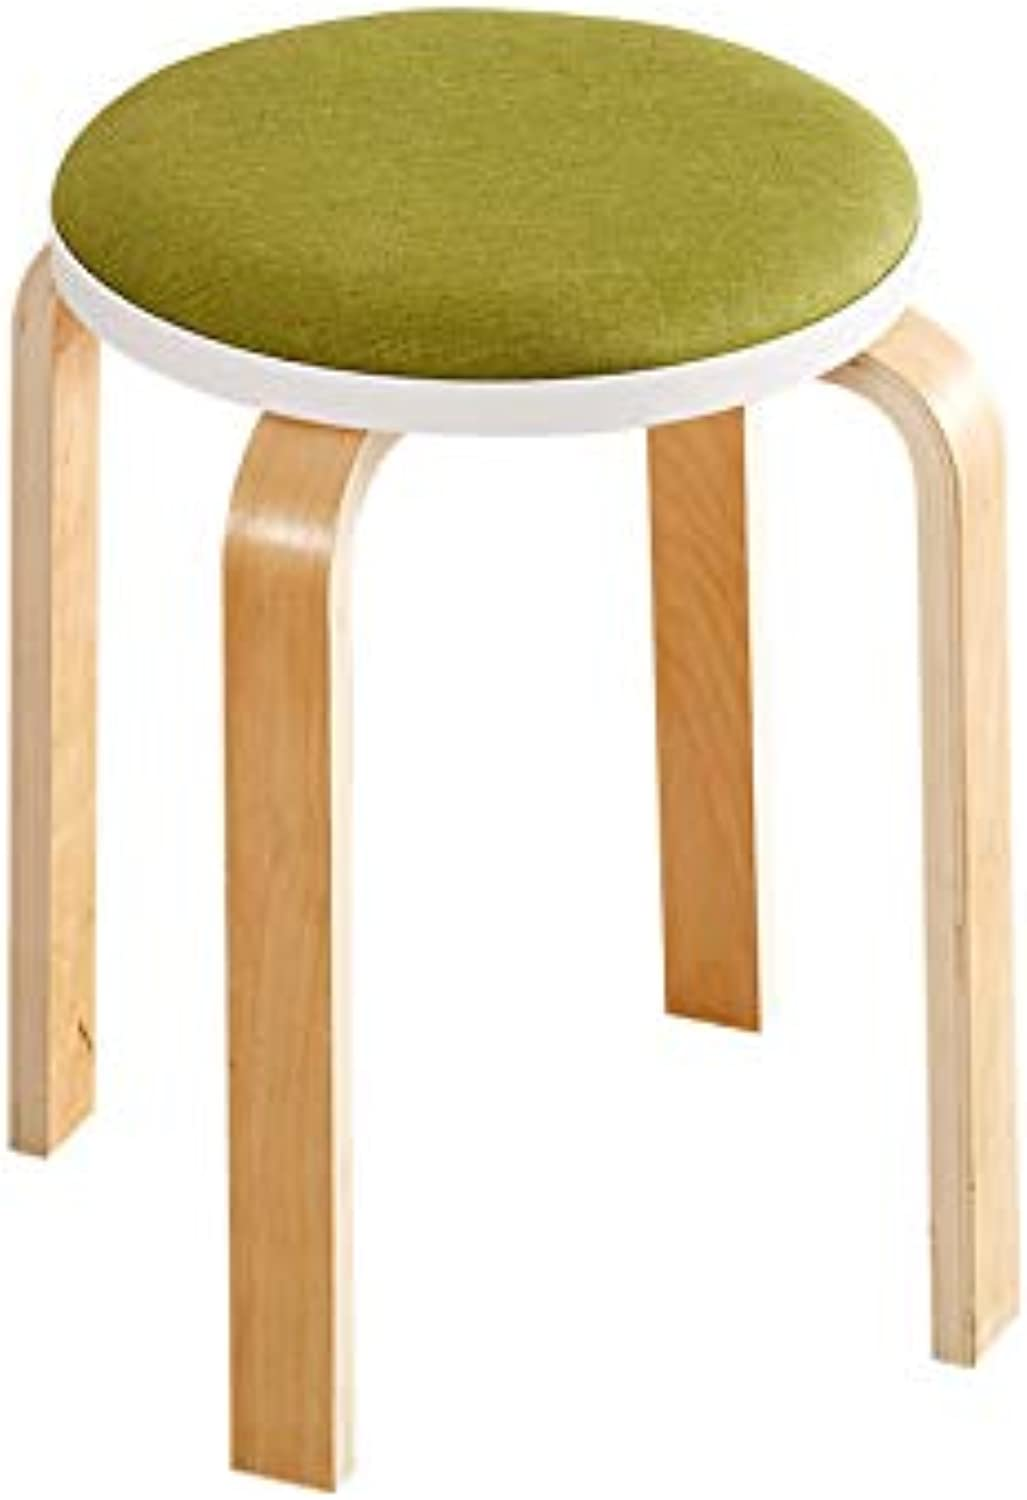 Small Bench Fashion Cloth Grass Green Multi-Function Chair High Stool Dressing Stool Living Room Dining Room Bench (color   Green, Size   45x32cm)